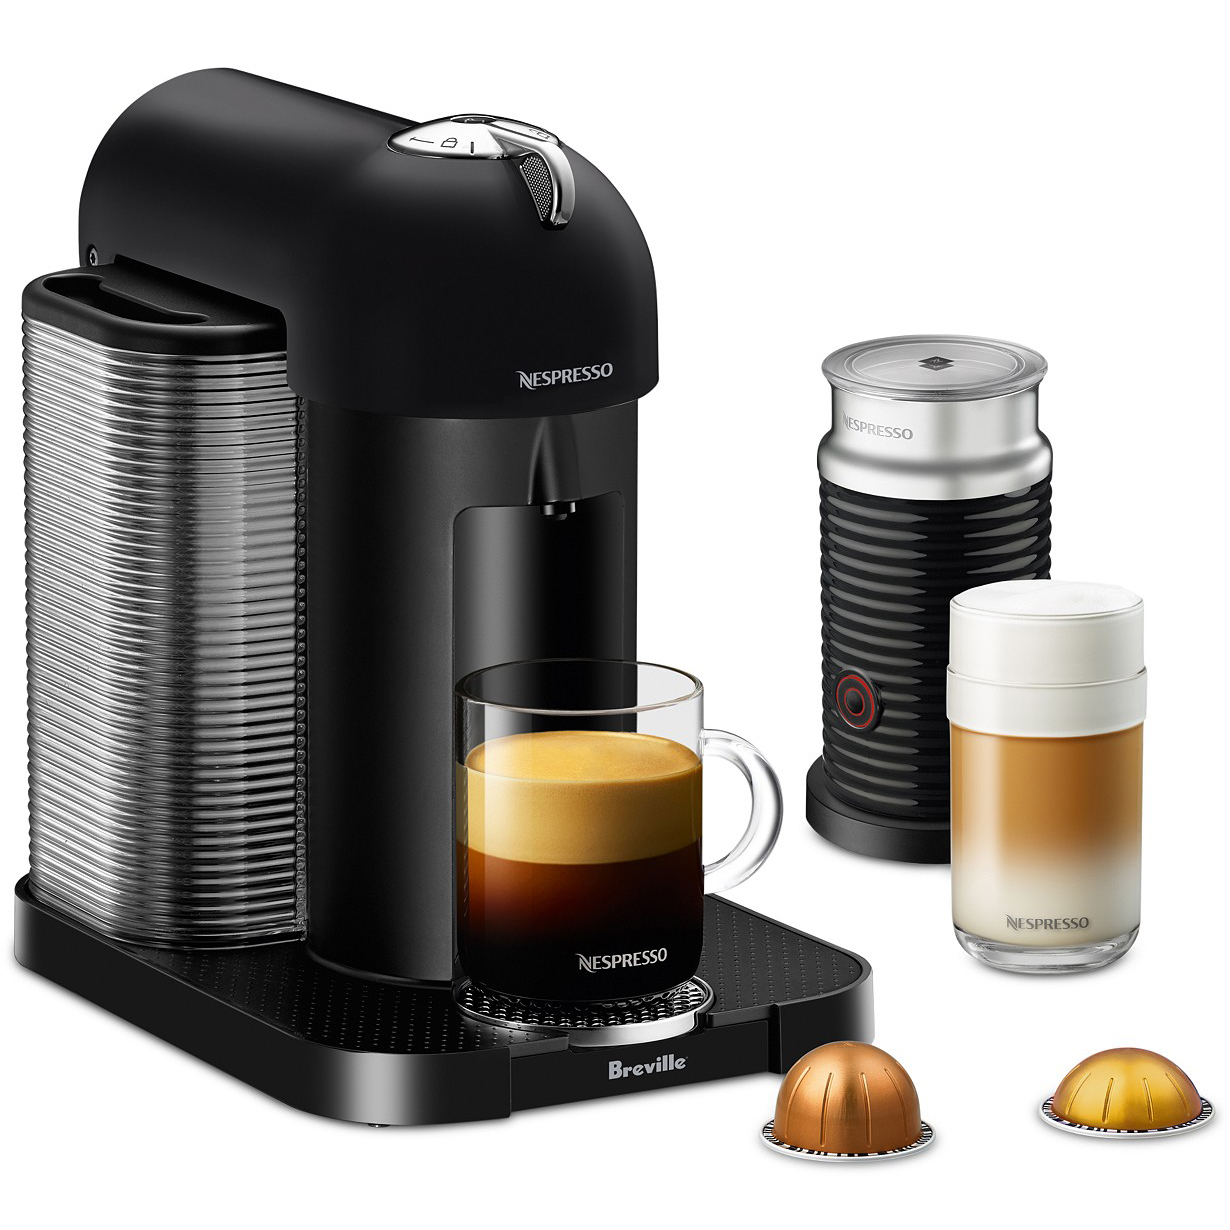 Nespresso by Breville VertuoLine Coffee & Espresso Machine with Aeroccino